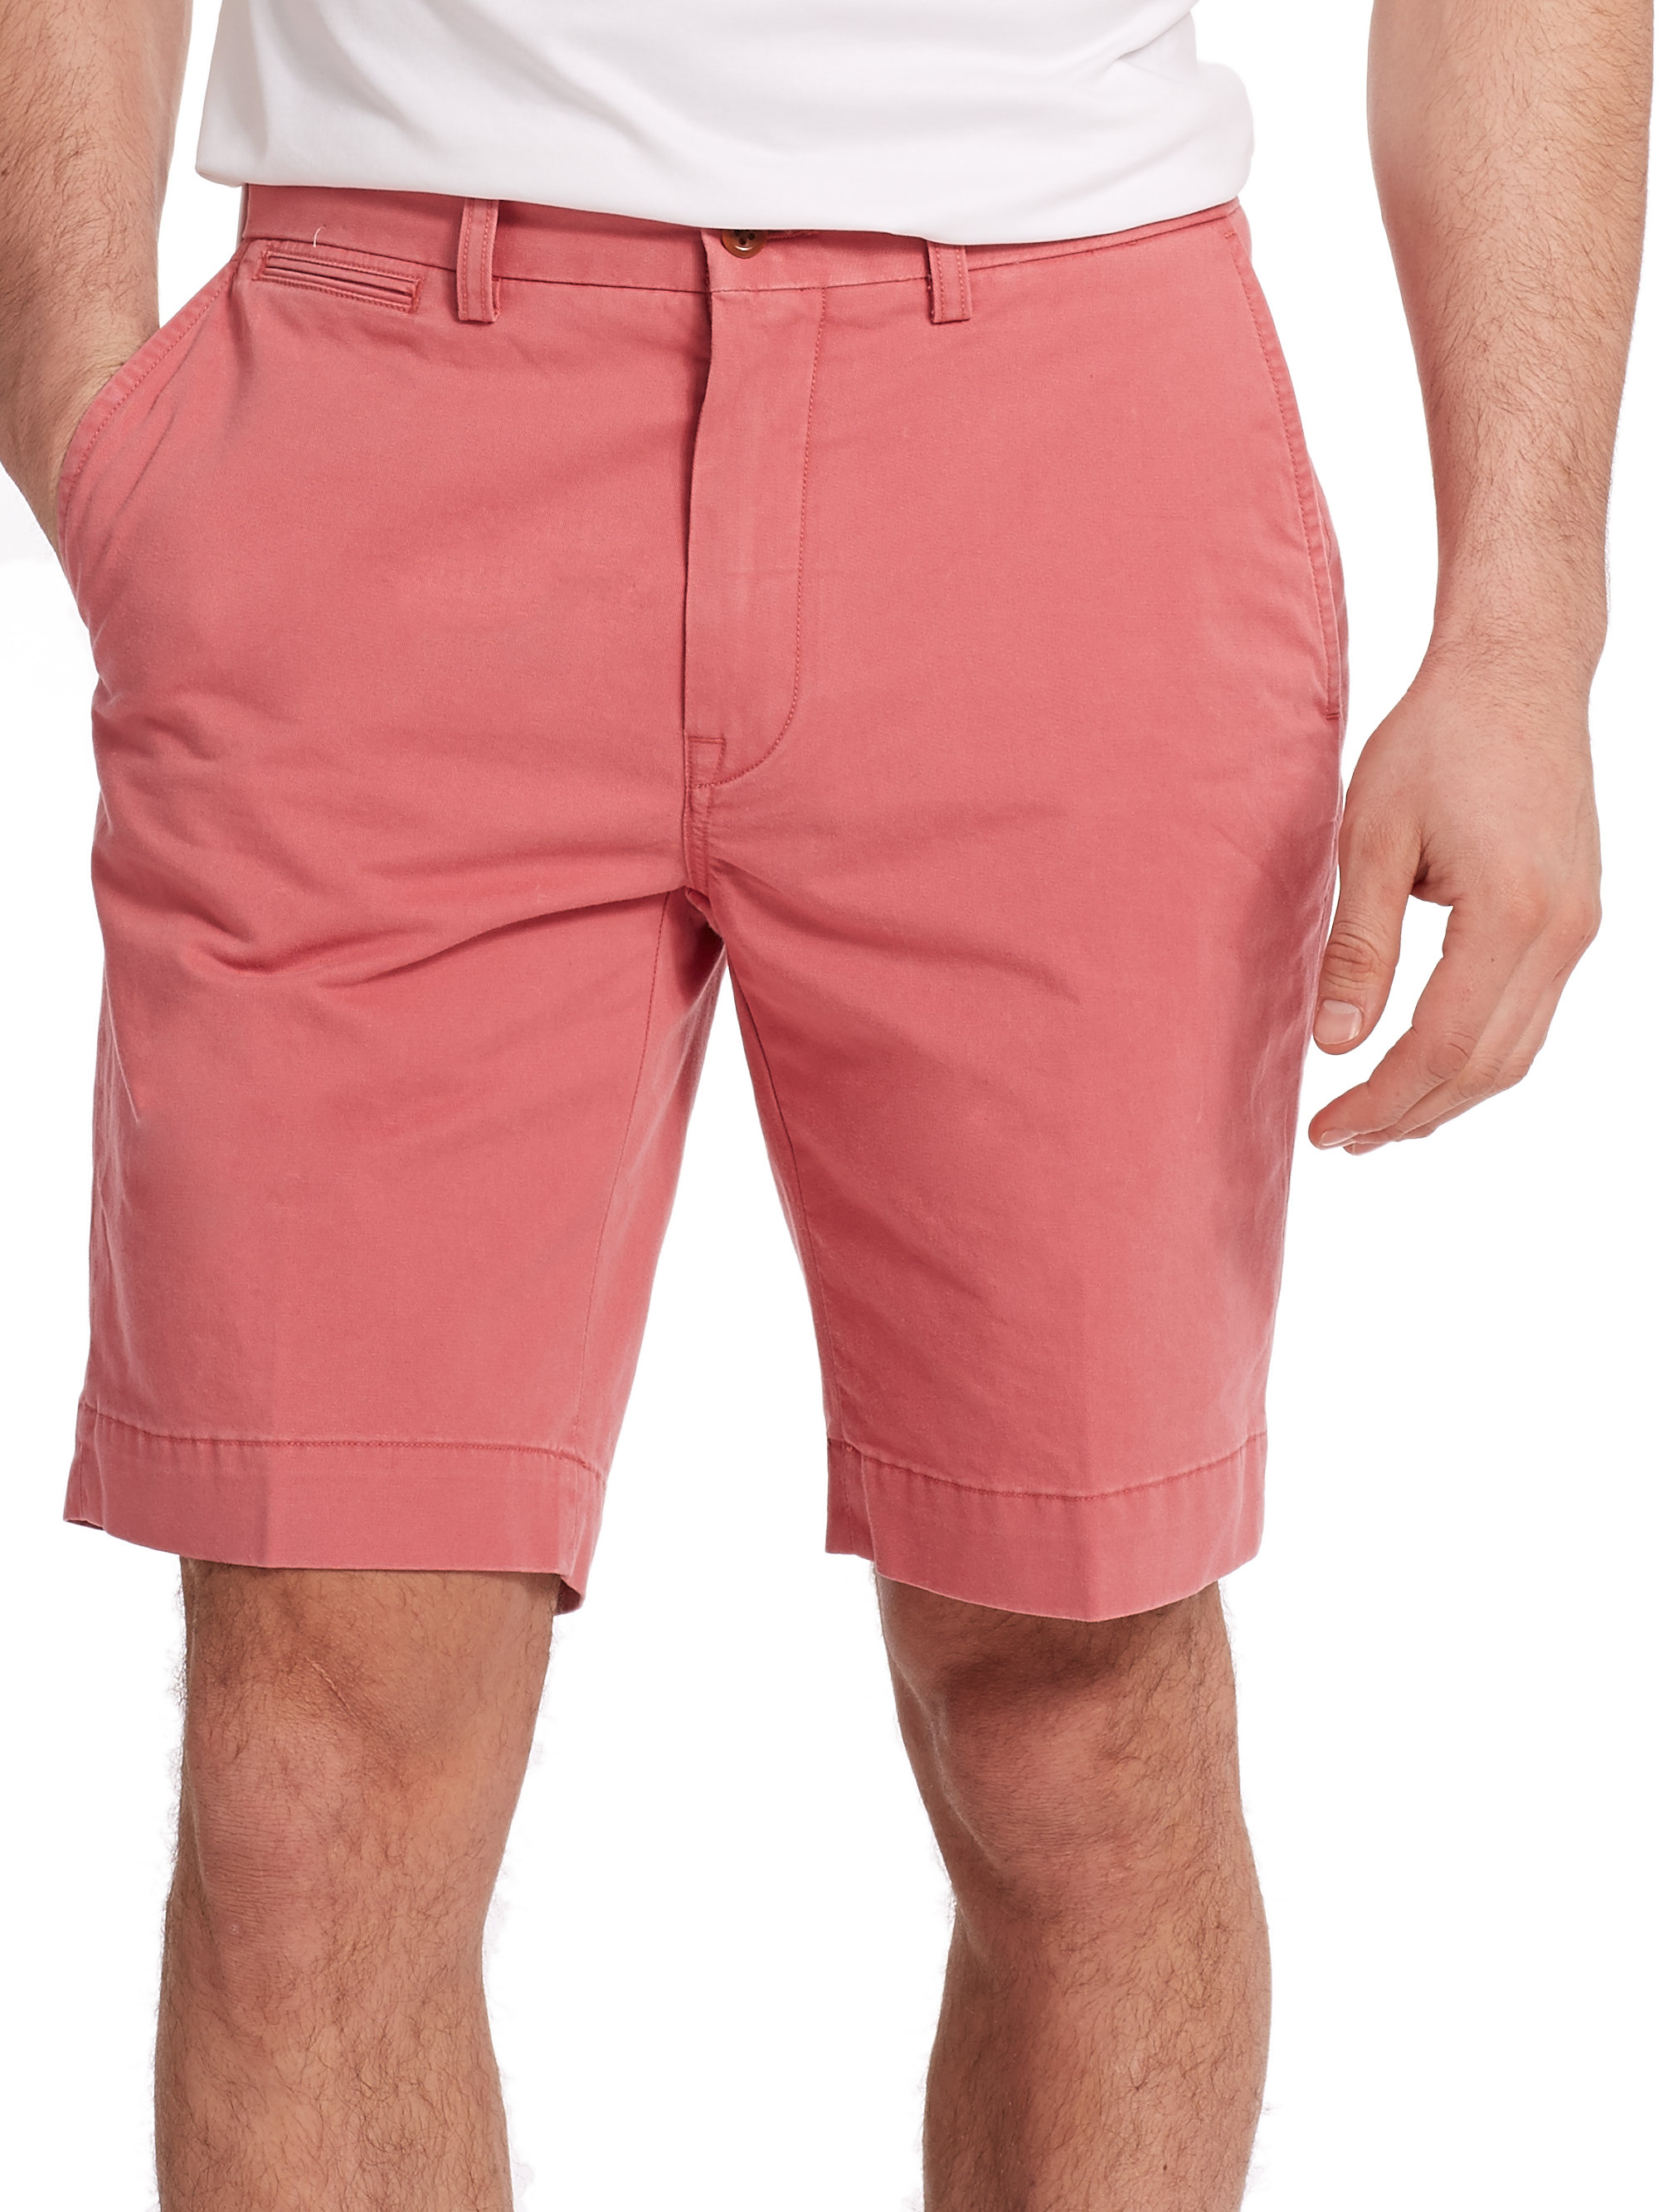 Polo ralph lauren Classic-Fit Lightweight Chino Shorts in Pink for ...